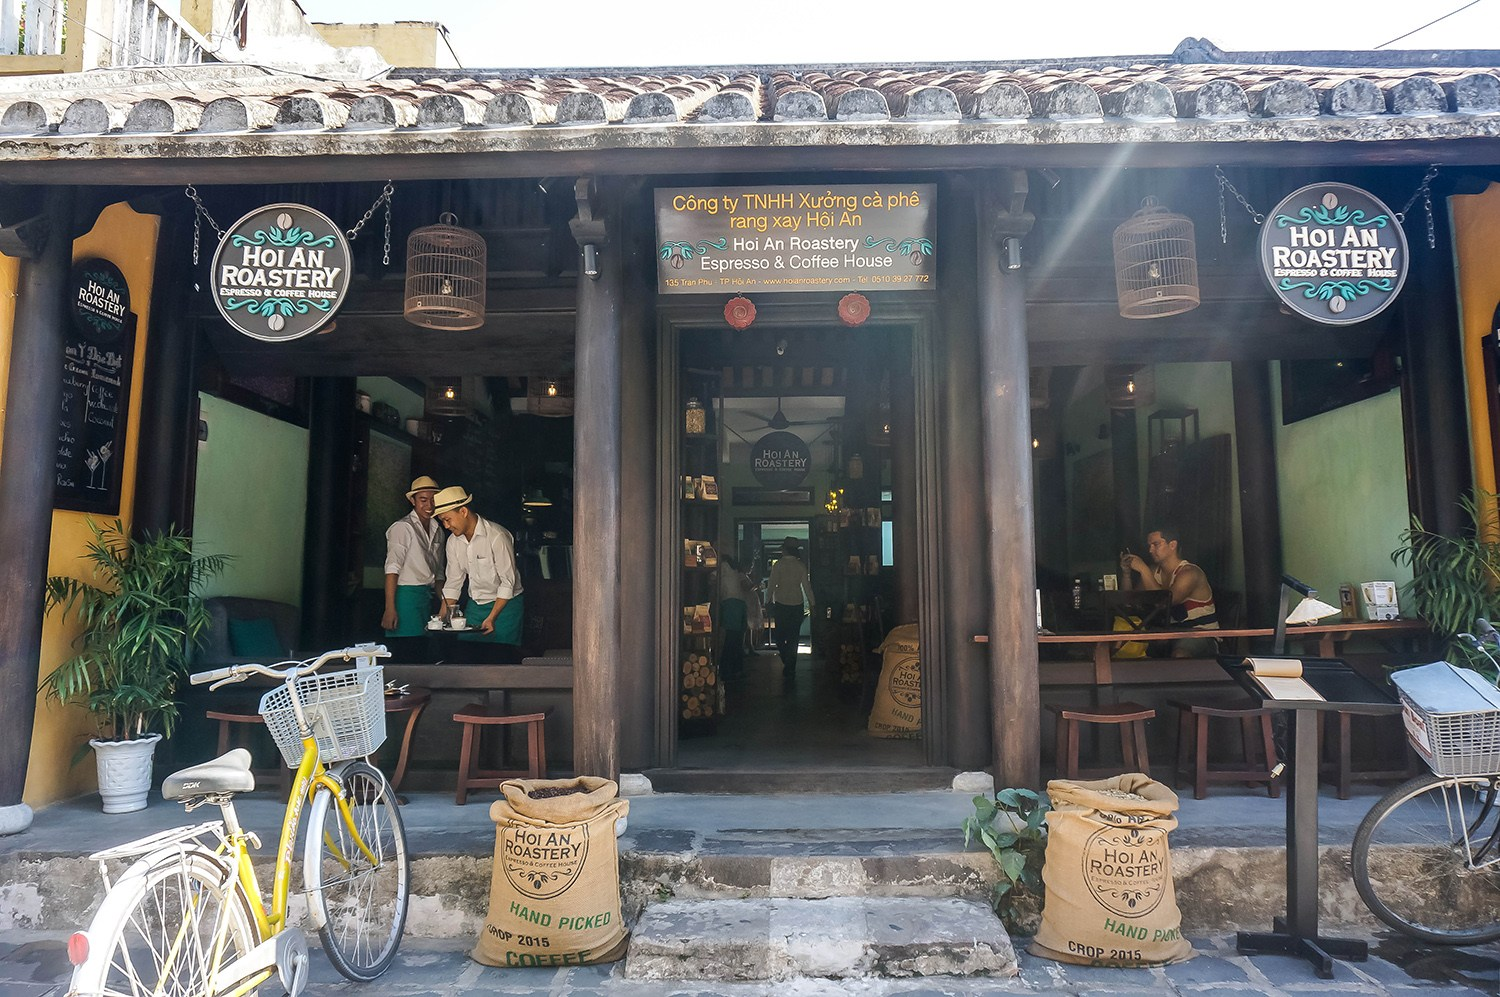 A unique cafe in Hoian for you to visit